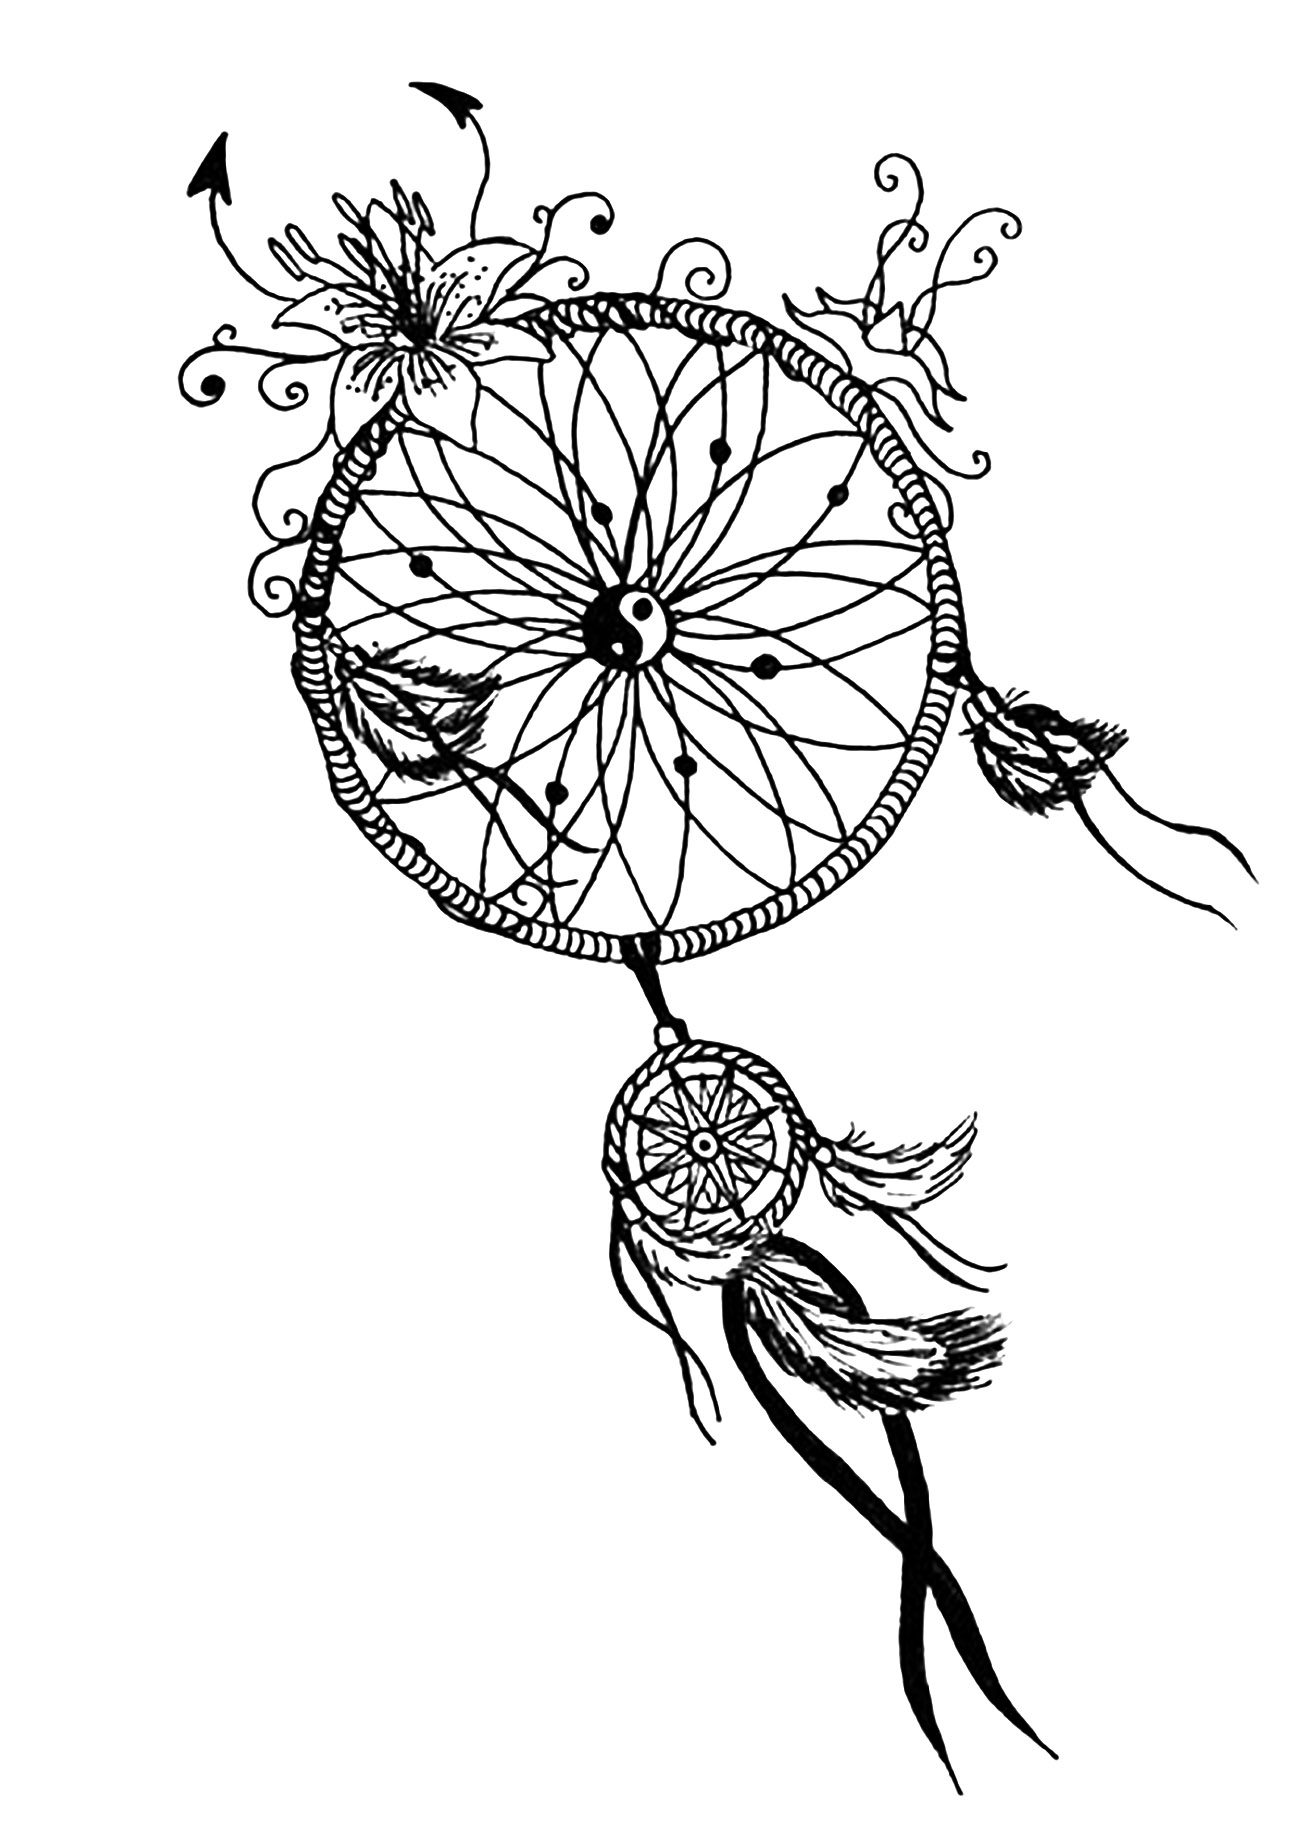 1300x1828 Dreamcatcher Coloring Pages For Adults Justcolor Noticeable Page